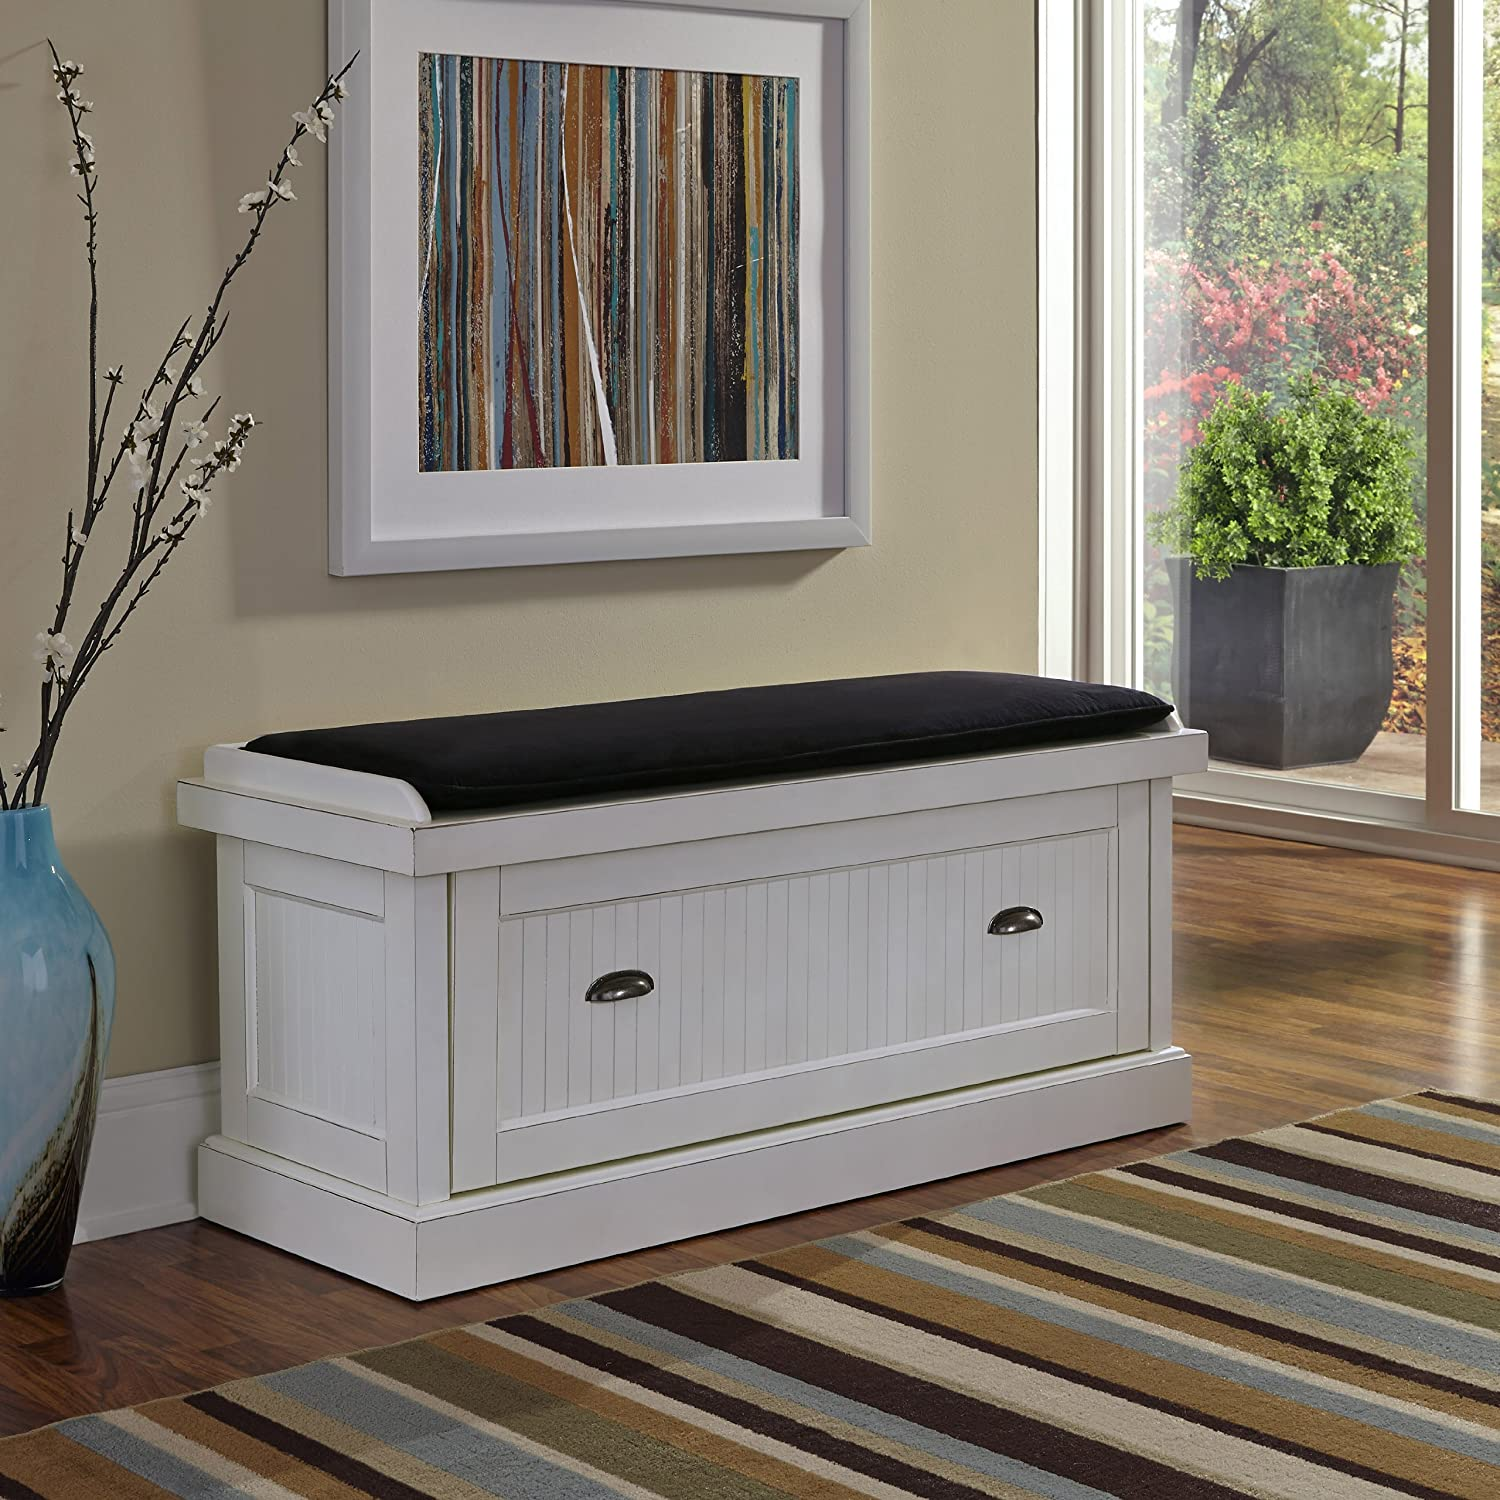 Amazon.com: Home Styles Nantucket Upholstered Bench, Distressed ...